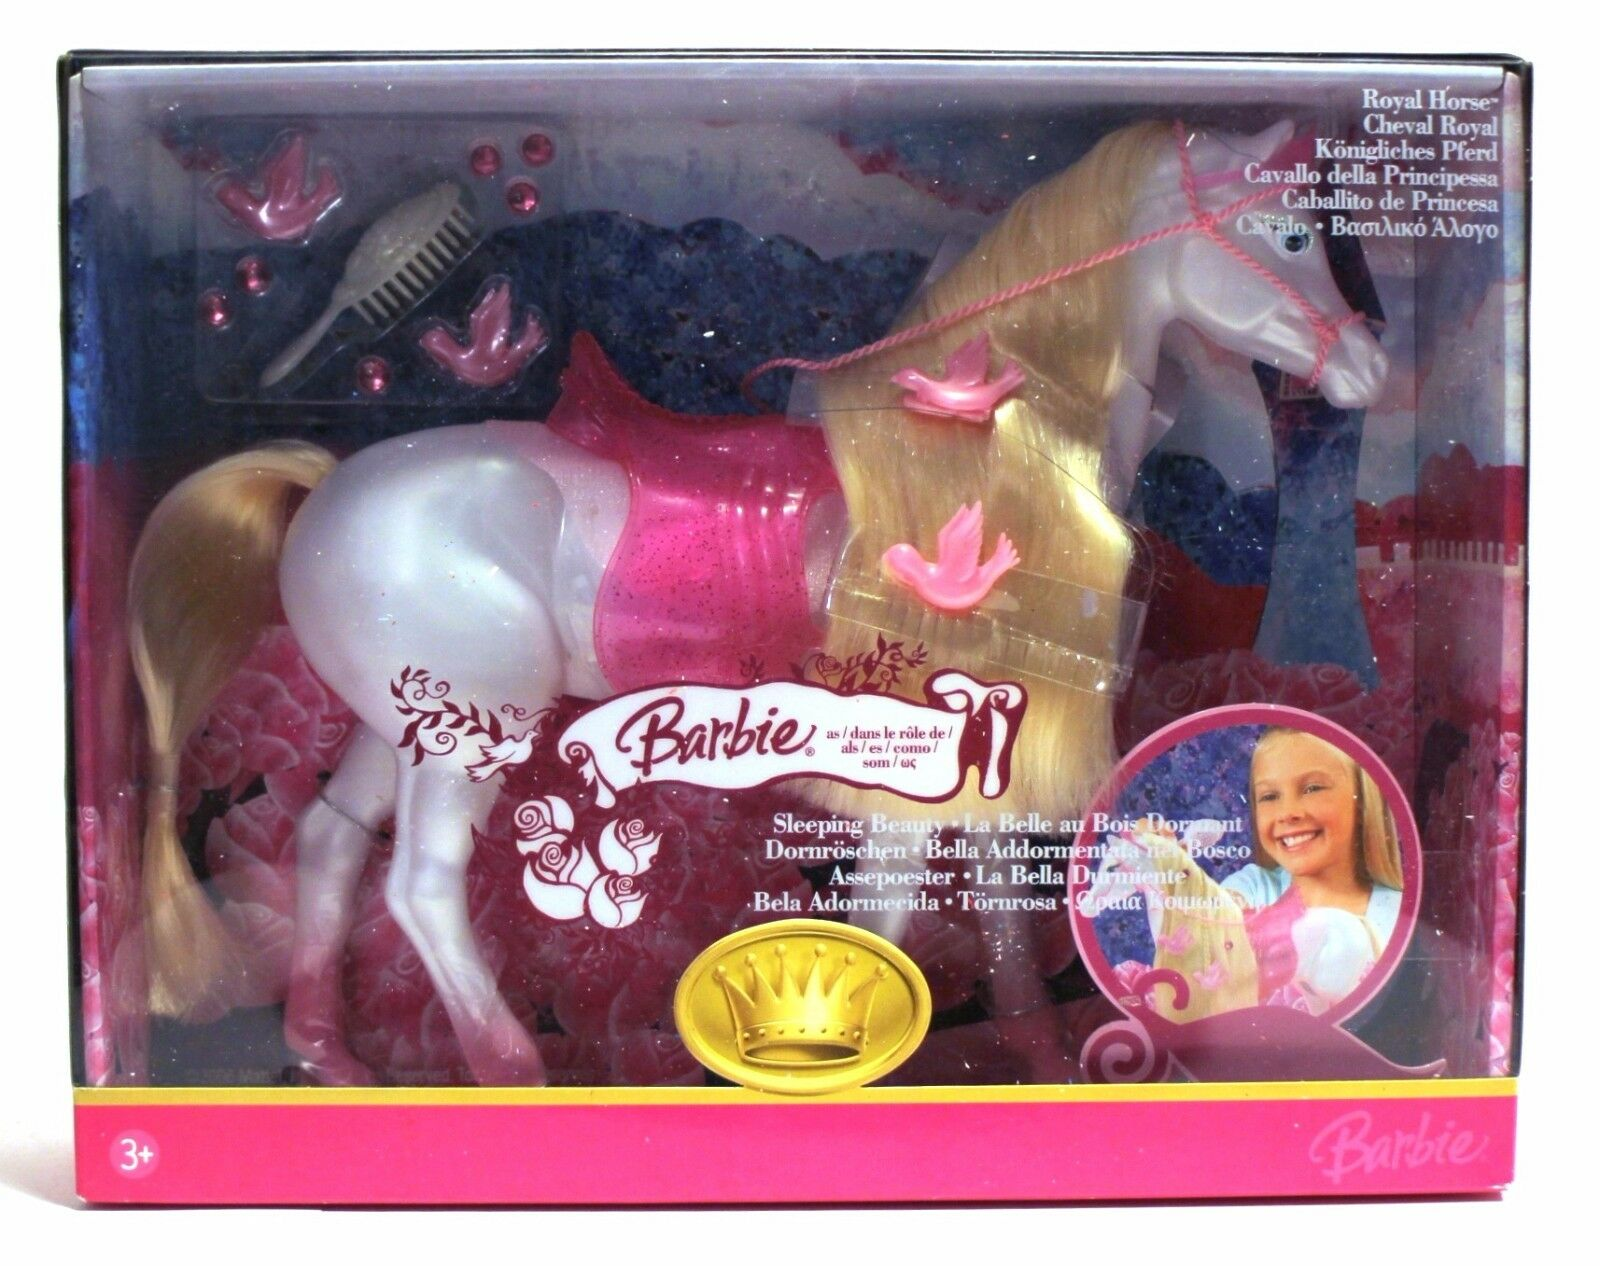 2006 Mattel Barbie Sleeping Beauty Royal Horse Excelente Sellado euro Caja VHTF